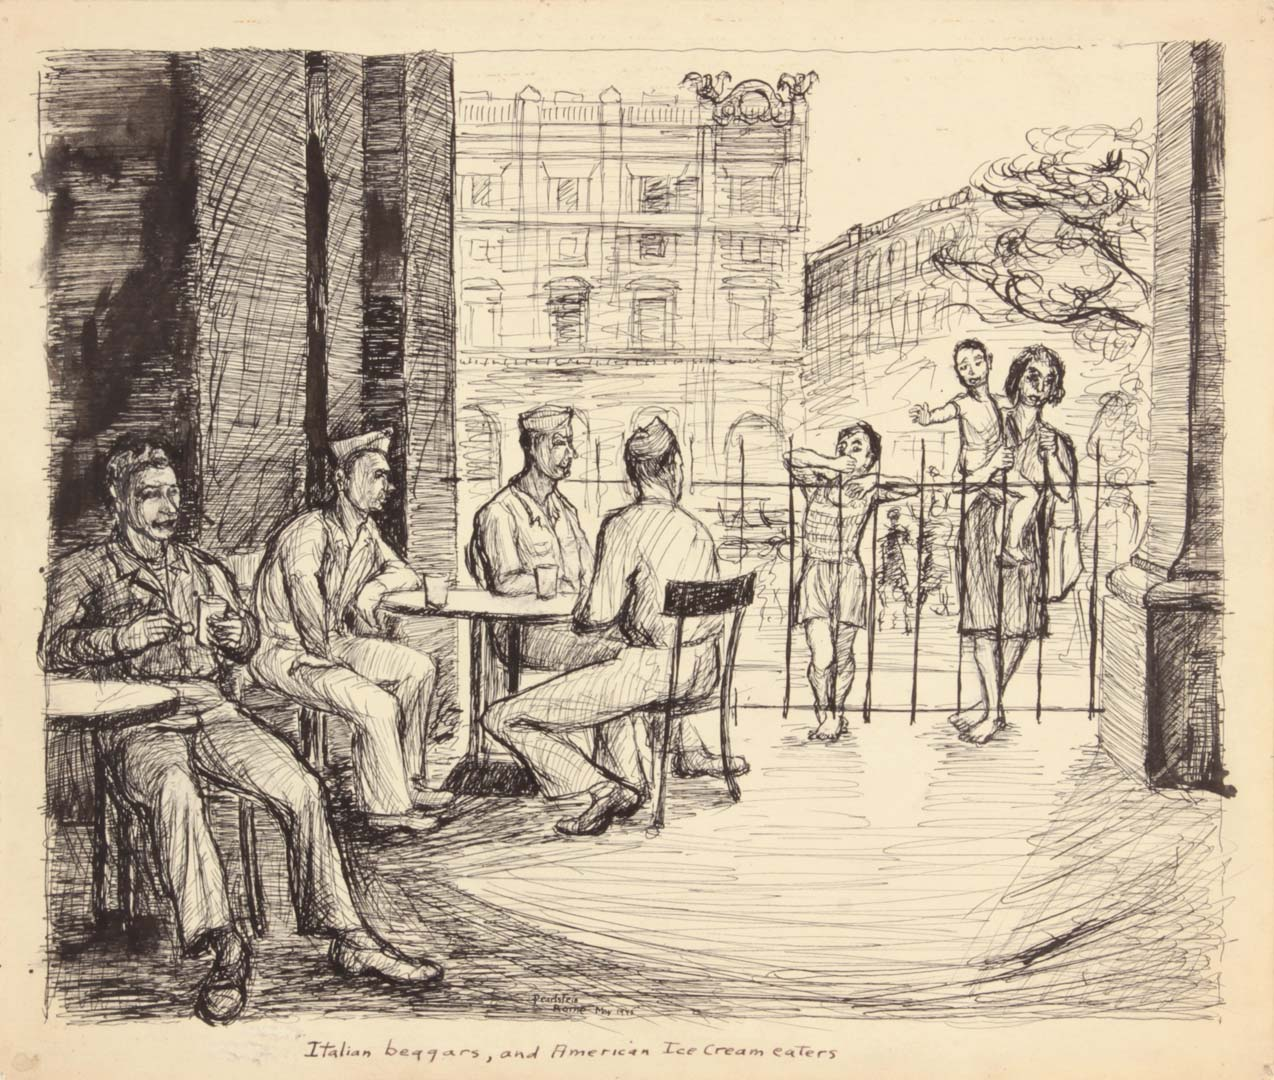 1945 Rome Italy VIII Italian Beggars And American Ice Cream Eaters Pen and Ink on Paper 9.9375 x 11.75